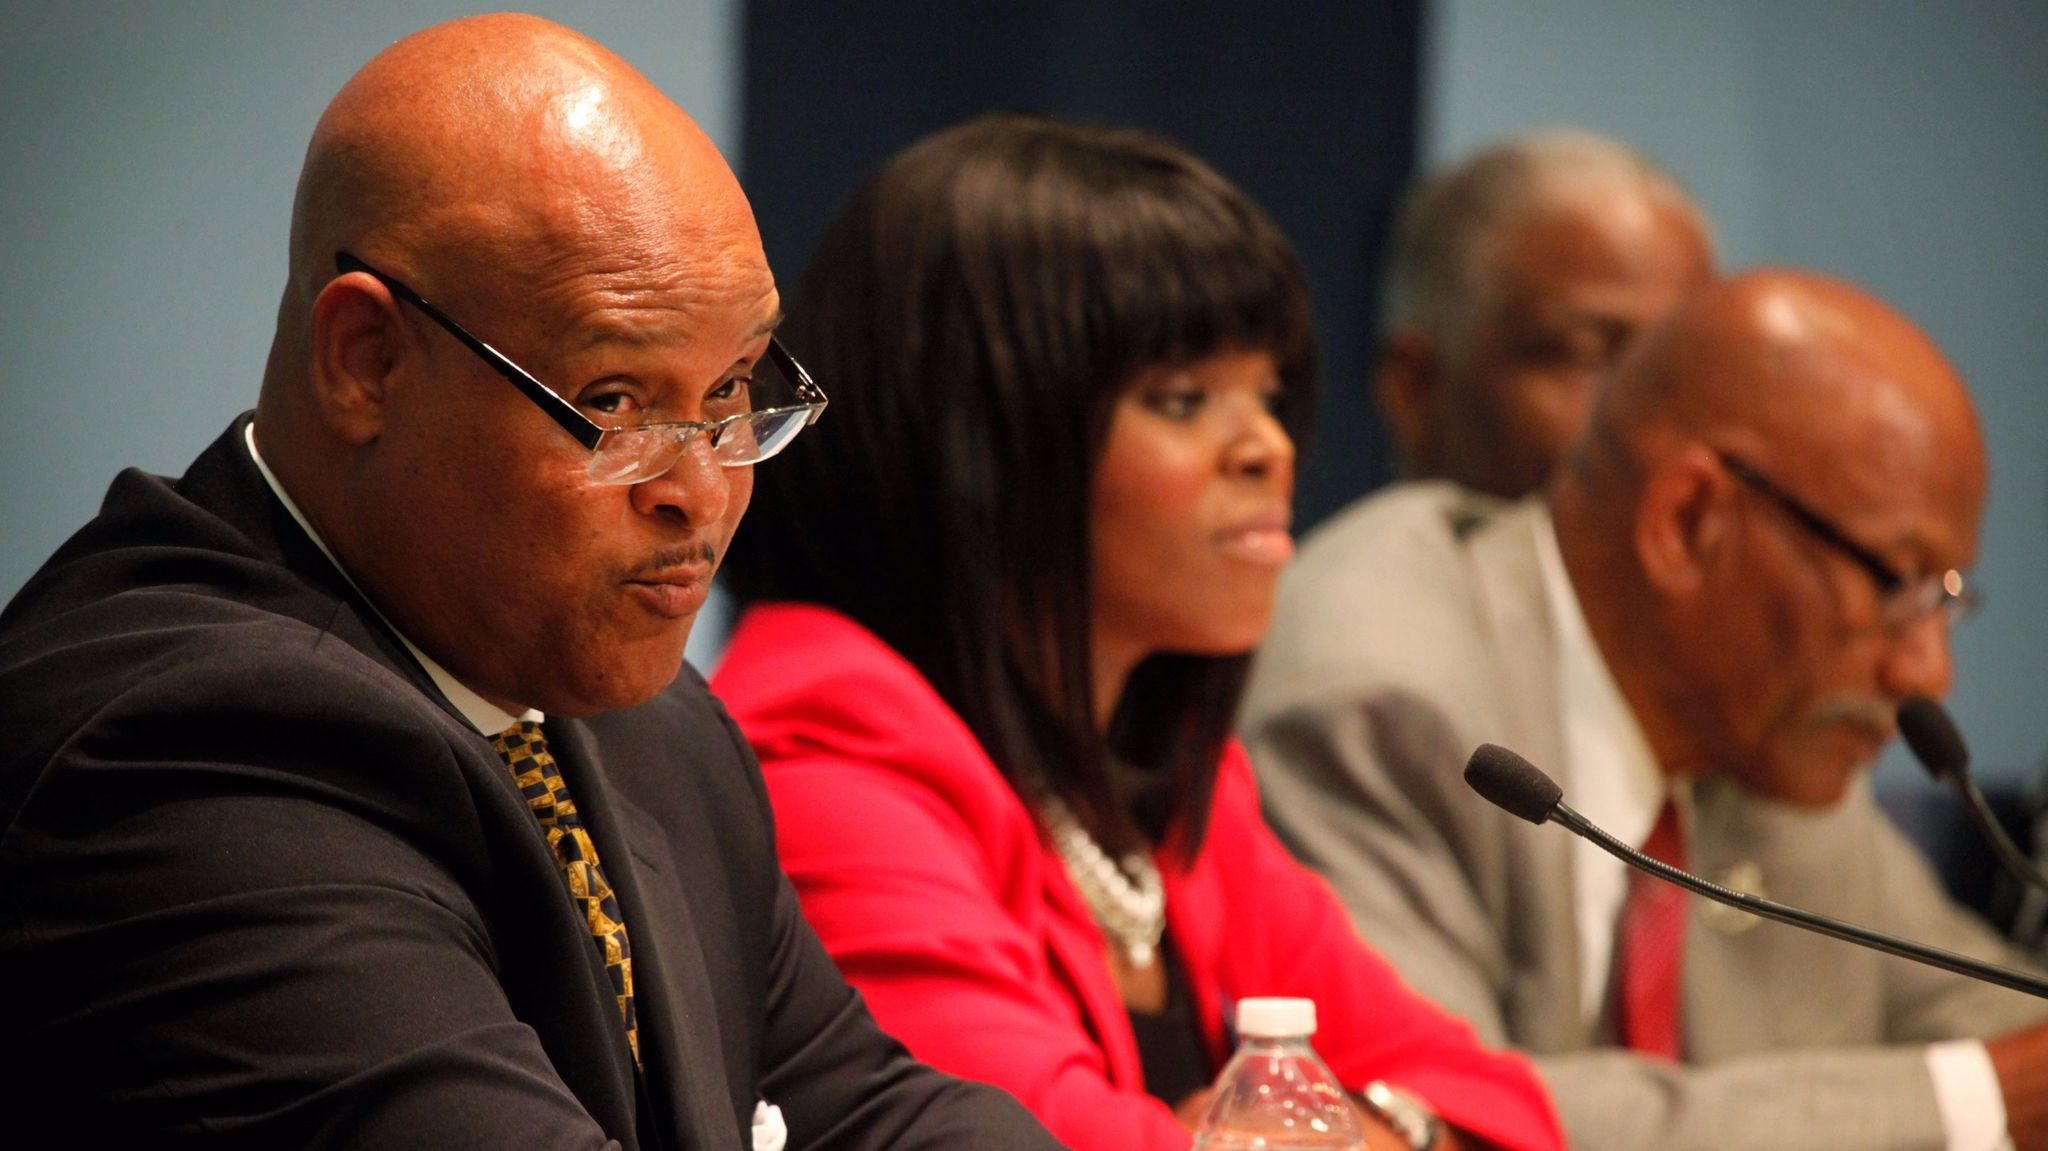 Omar Bradley and Aja Brown speak at a mayoral candidate forum in 2013.